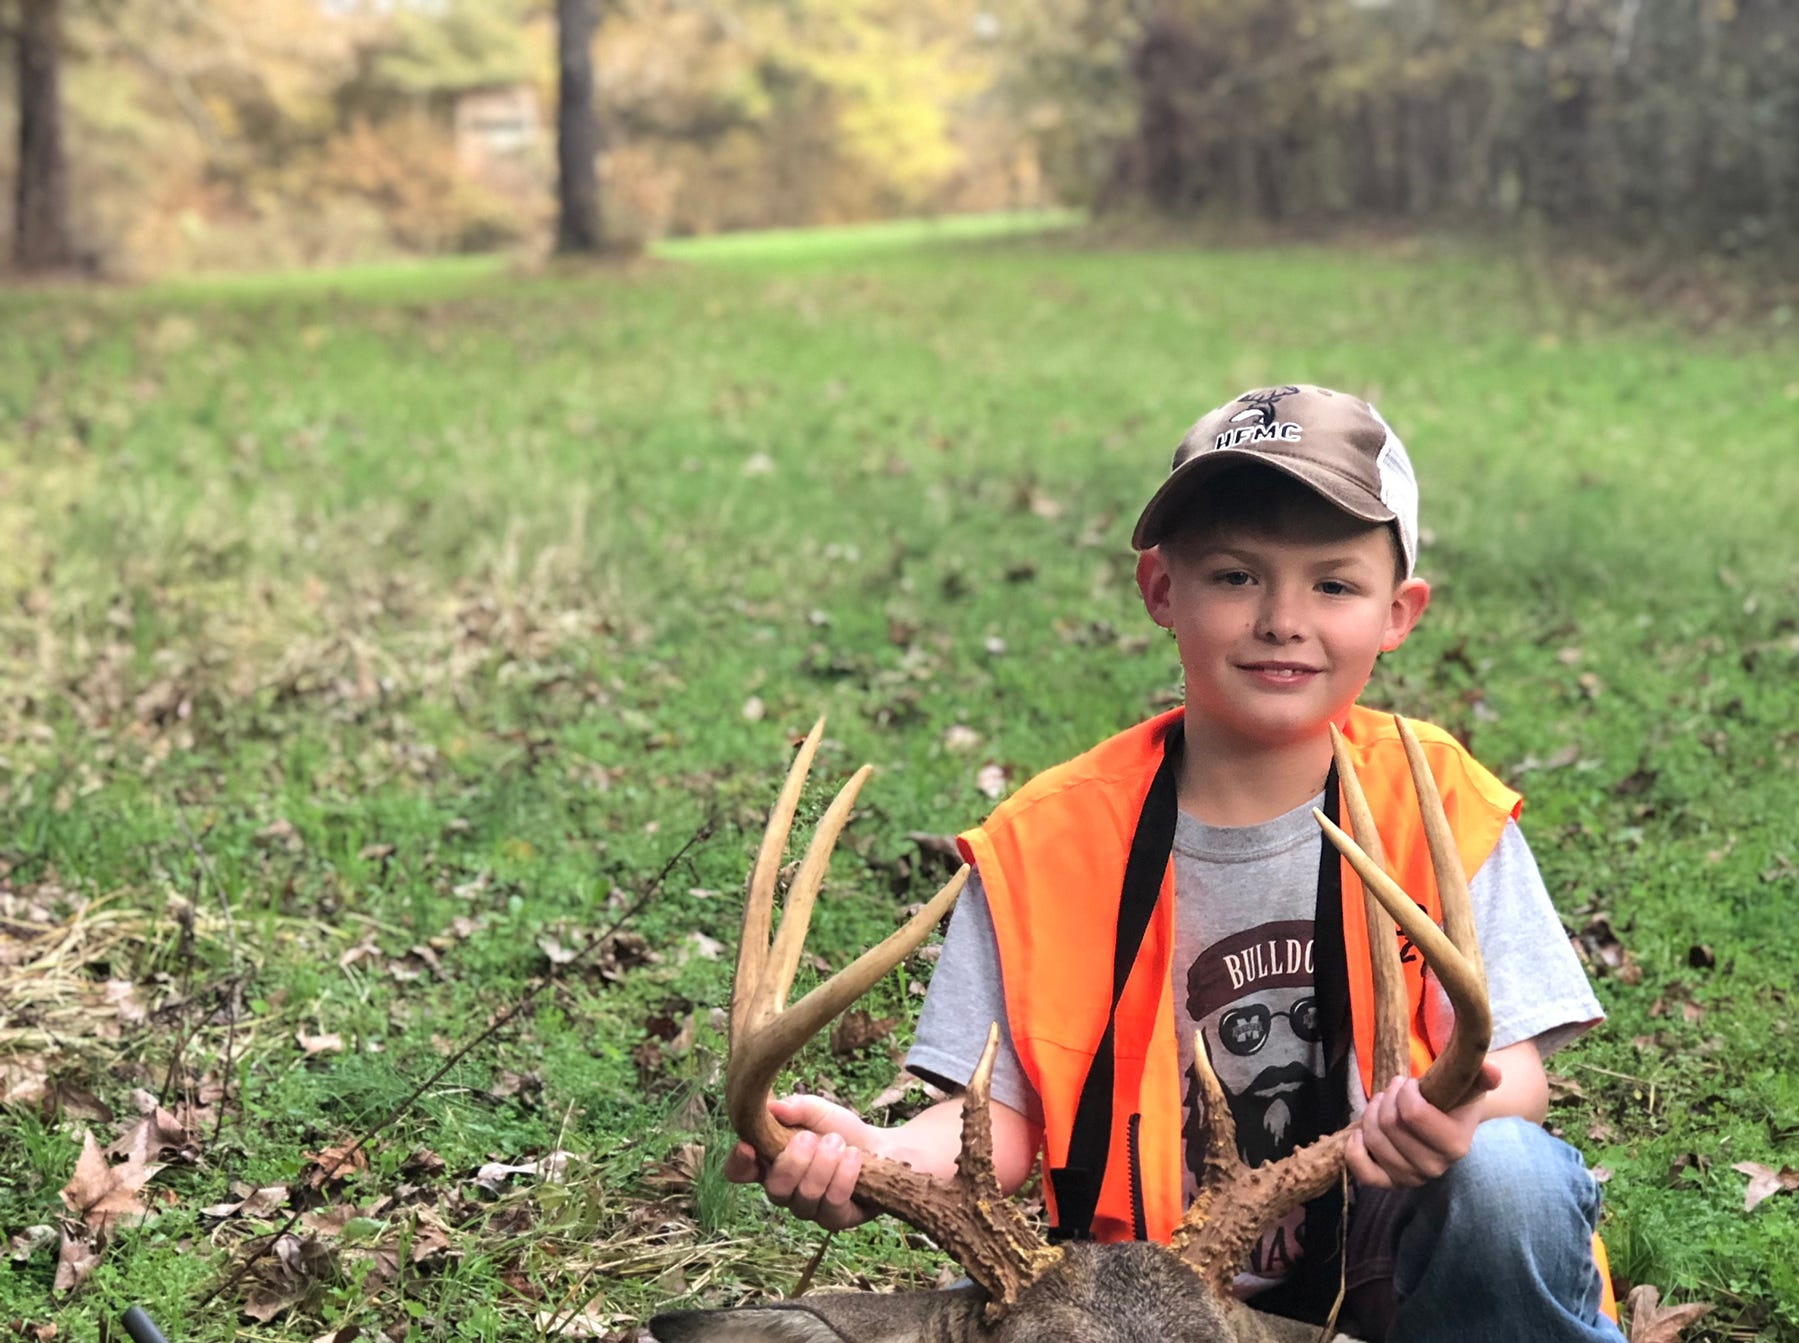 Keifer Young, 9, of Madison, harvested his first deer in Lexington. Young missed the buck with his first shot, but quickly chambered another cartridge and dropped the 8-point.